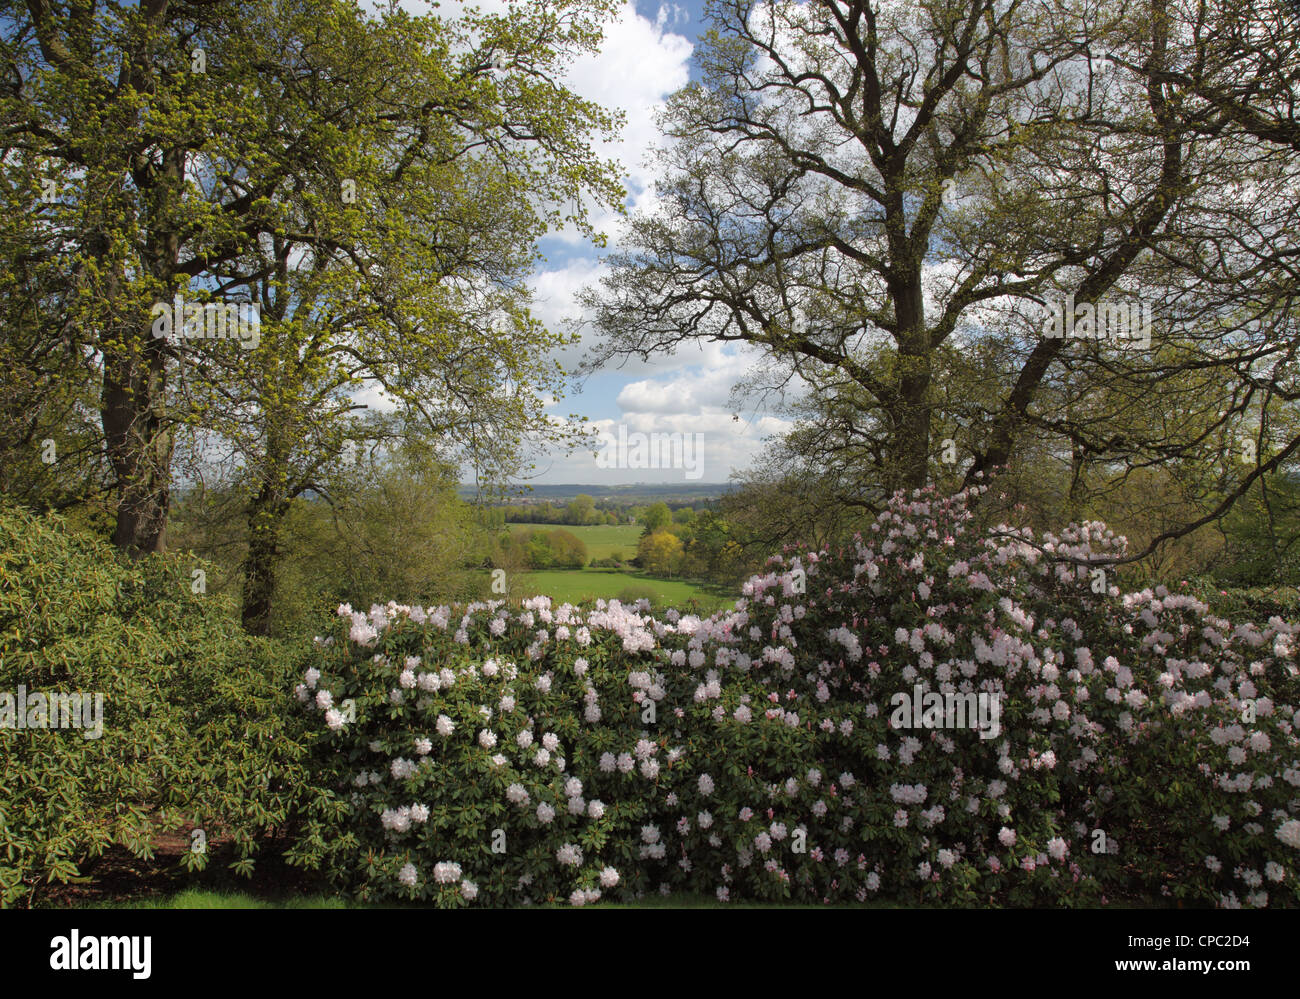 View from the Mausoleum, Bowood Gardens, Calne, Wiltshire - Stock Image